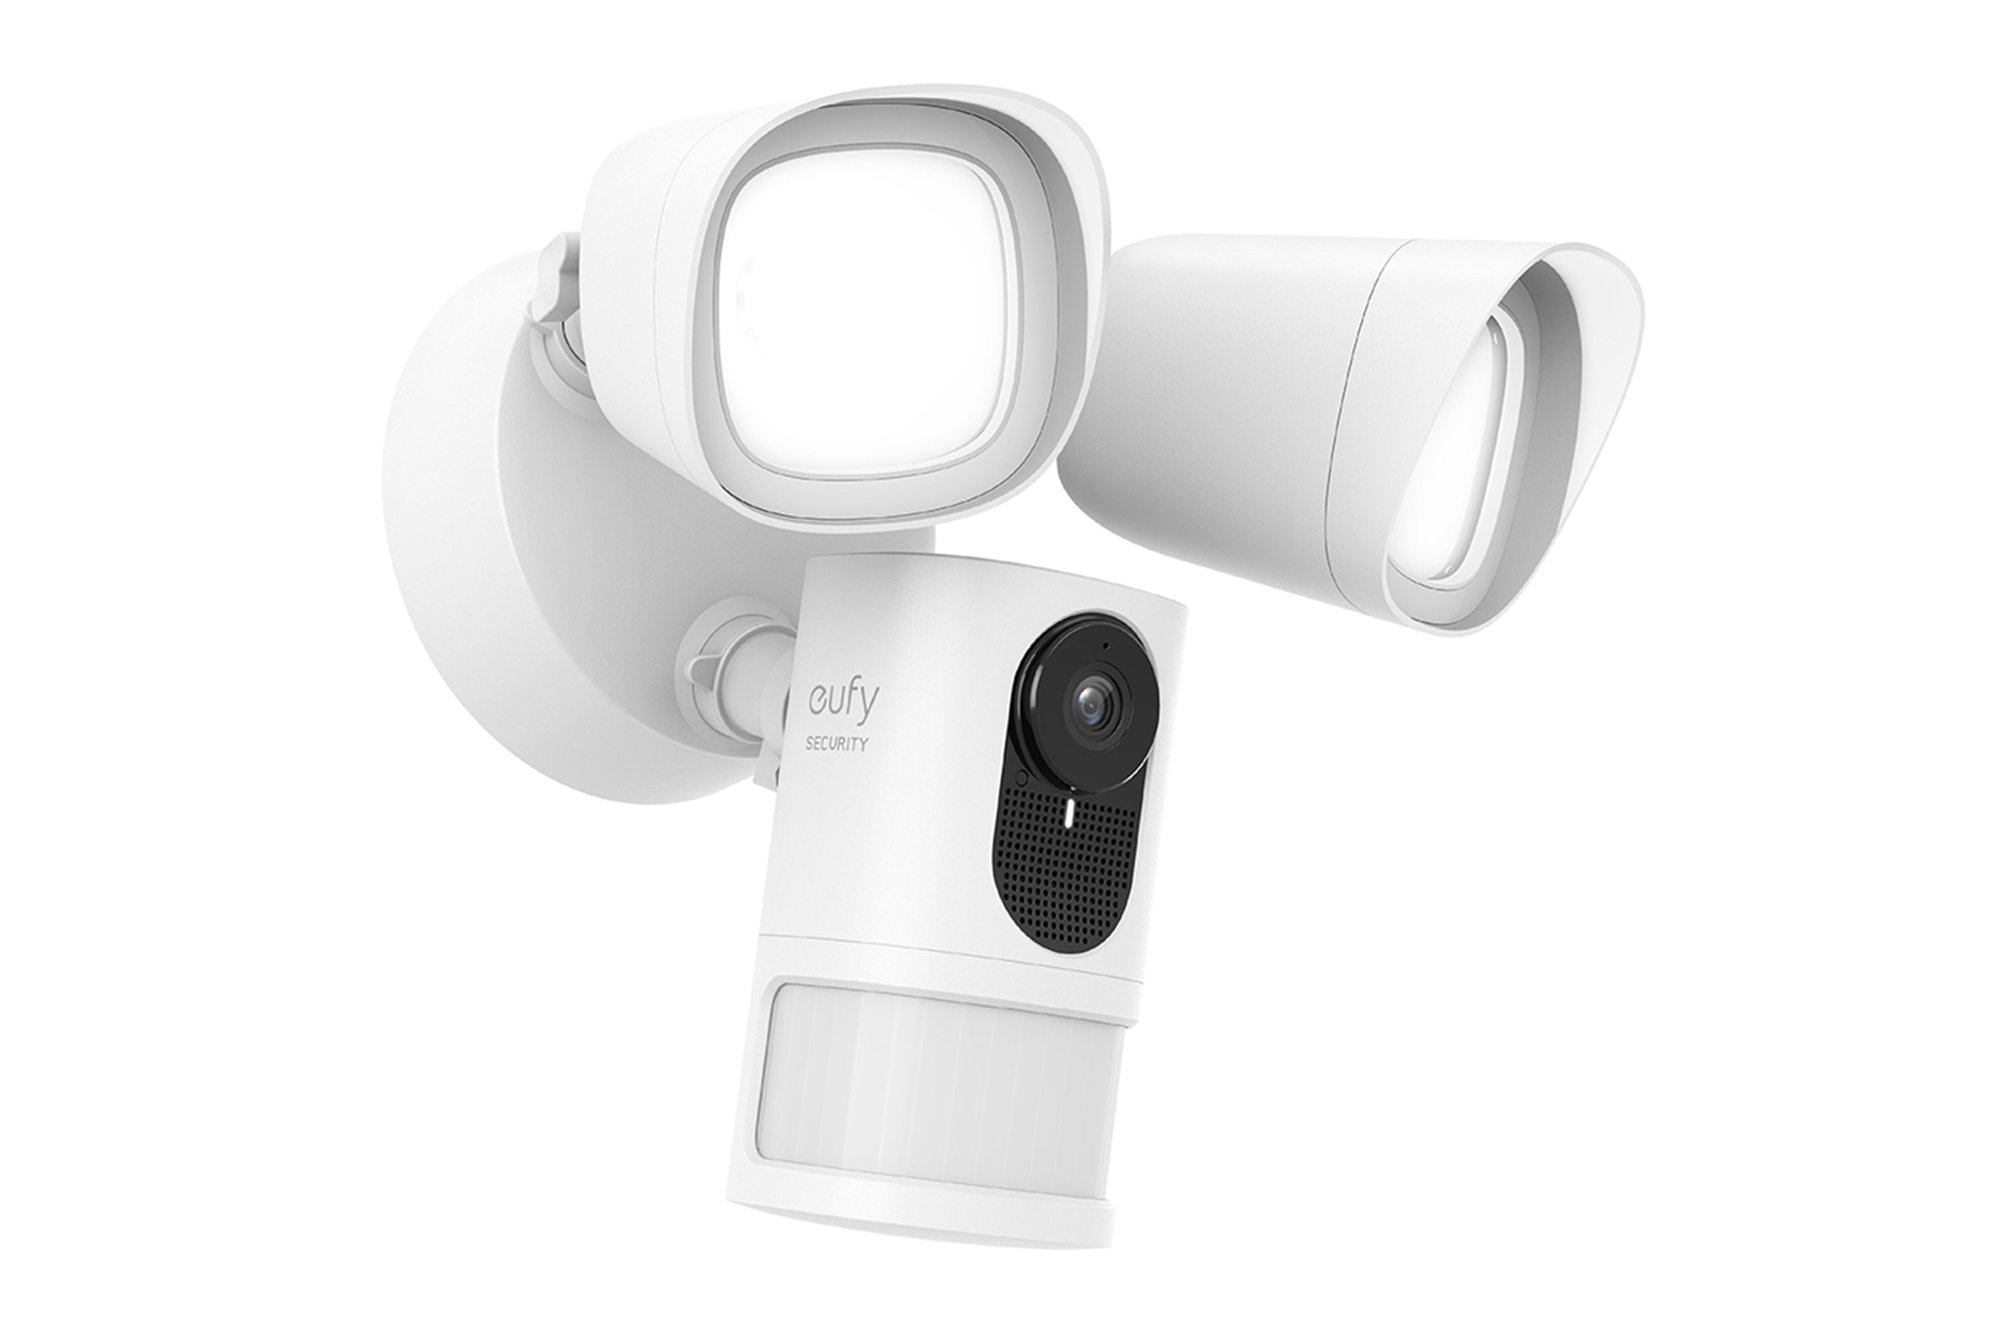 Smart Floodlight with Wireless Security Camera Eufy SECURITY 1080p